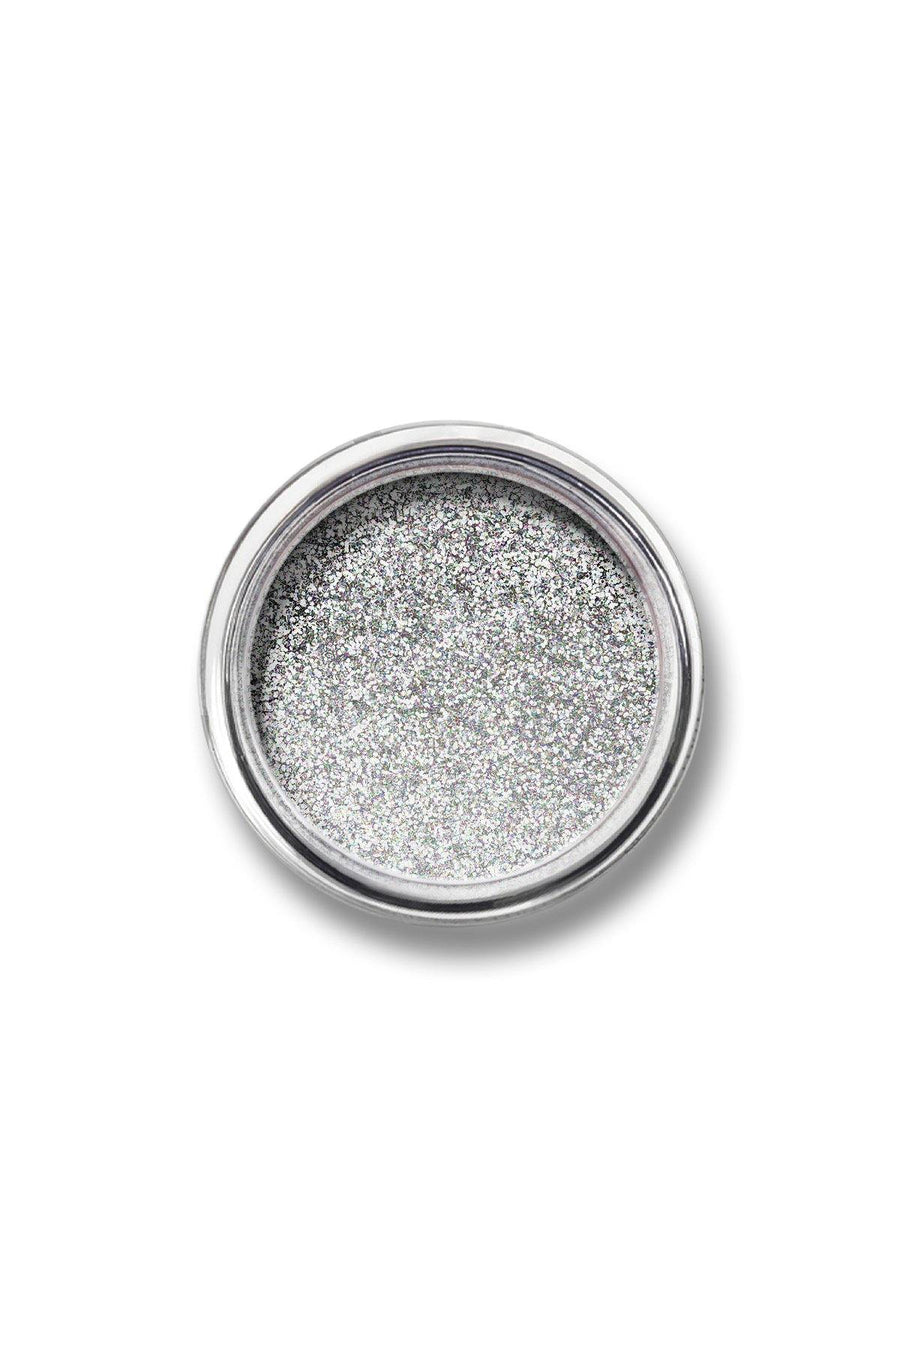 Glitter Powder #5 - White - Blend Mineral Cosmetics